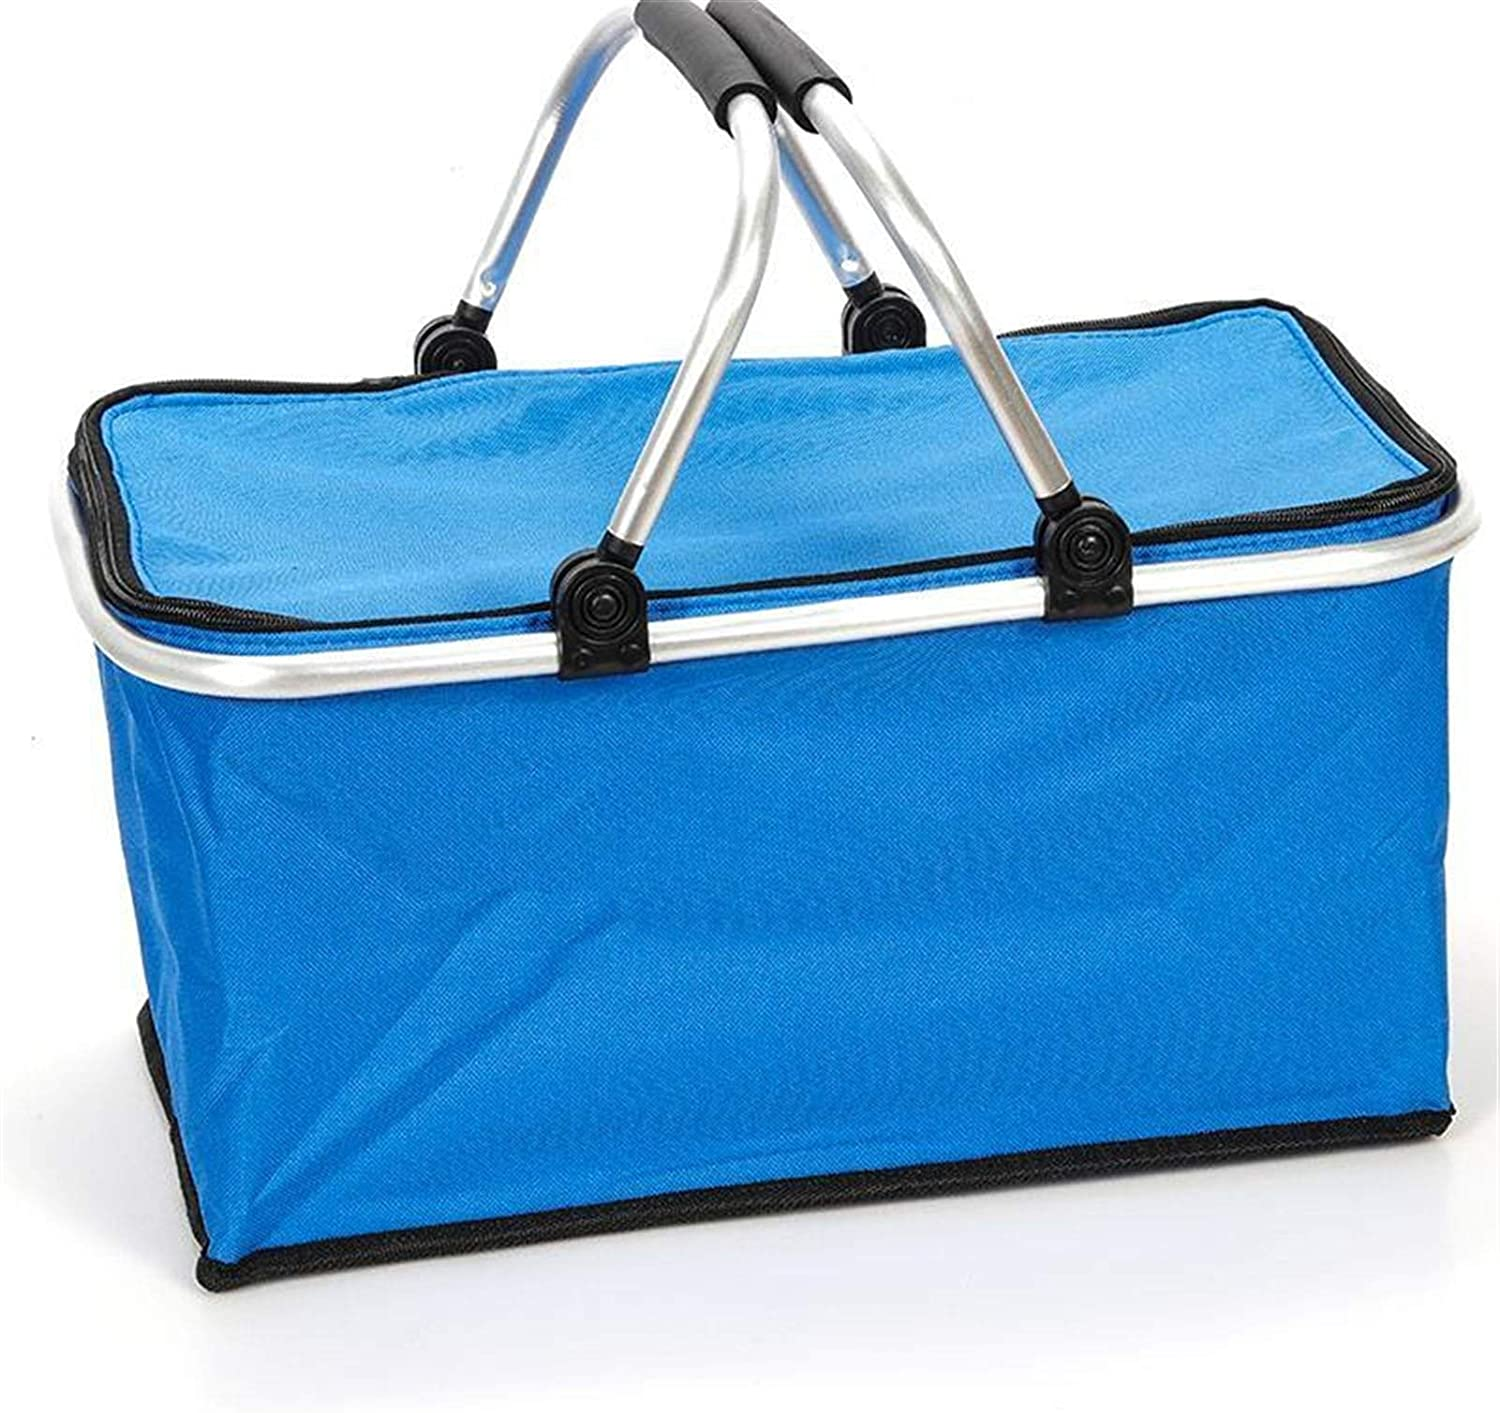 MING-MCZ Durable 30L Folding Picnic Ca Lunch 55% OFF Basket Now on sale Bag